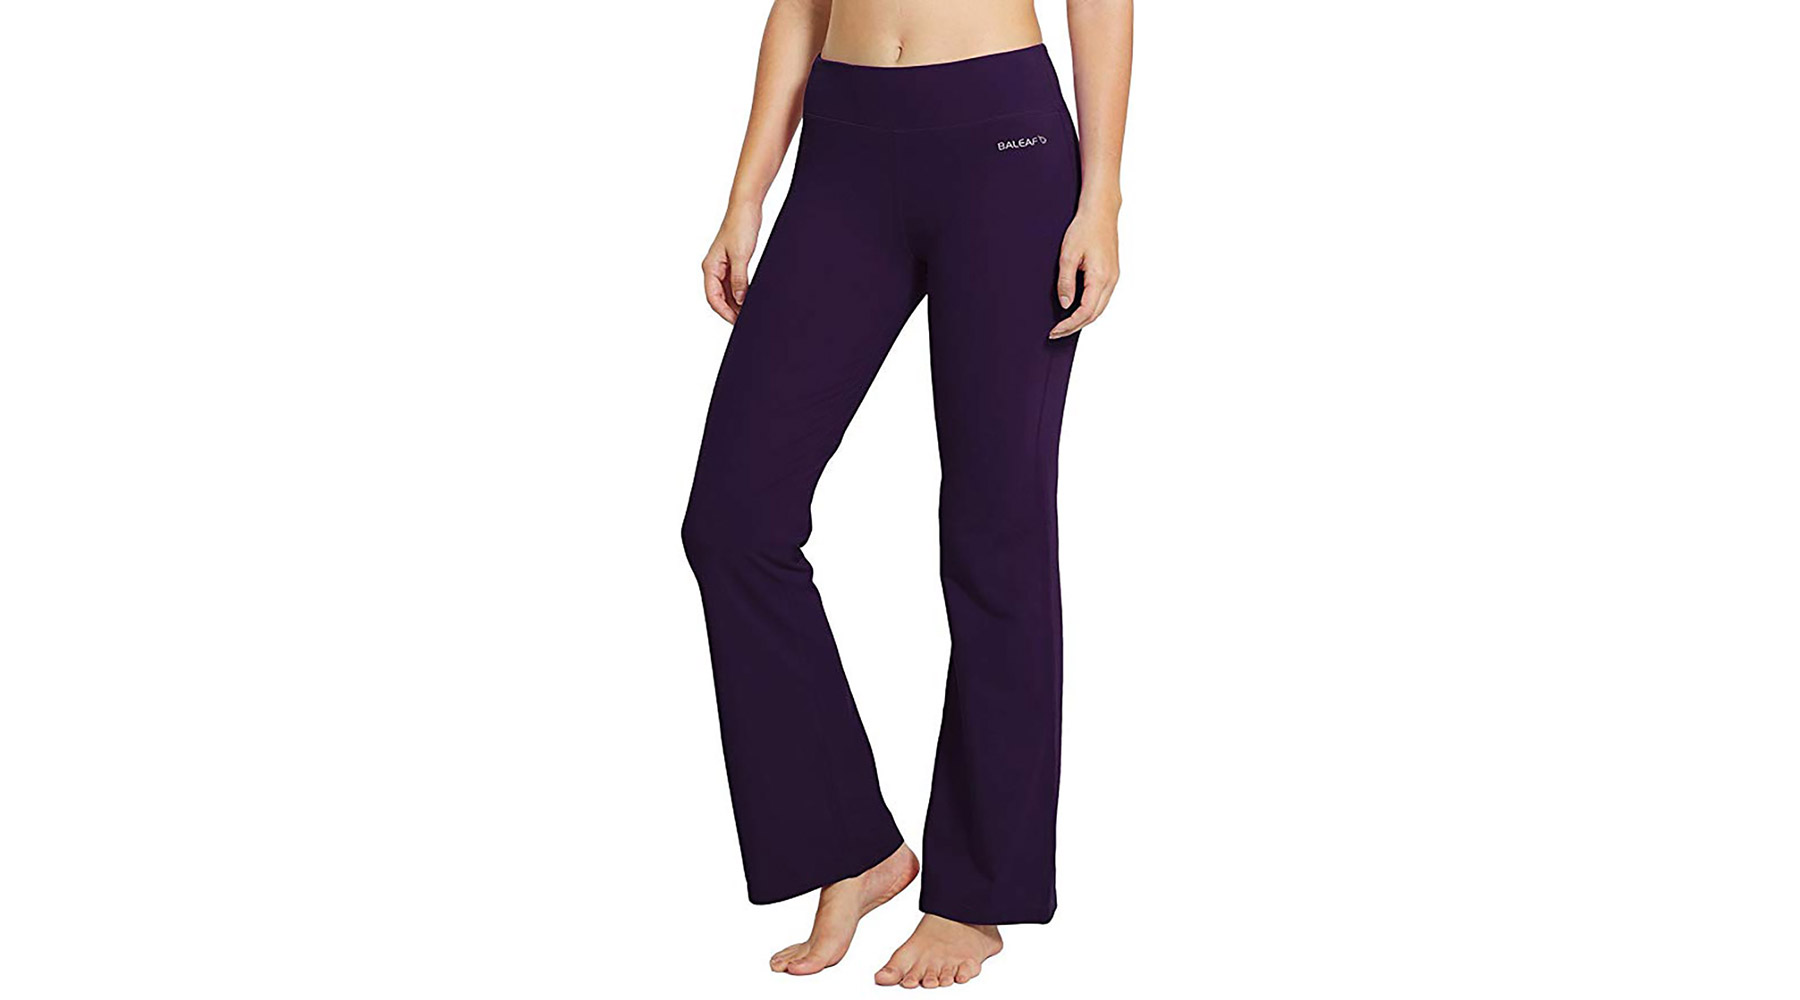 ad949322552c3 7 Best Yoga Pants on Amazon, According to Customers | Real Simple